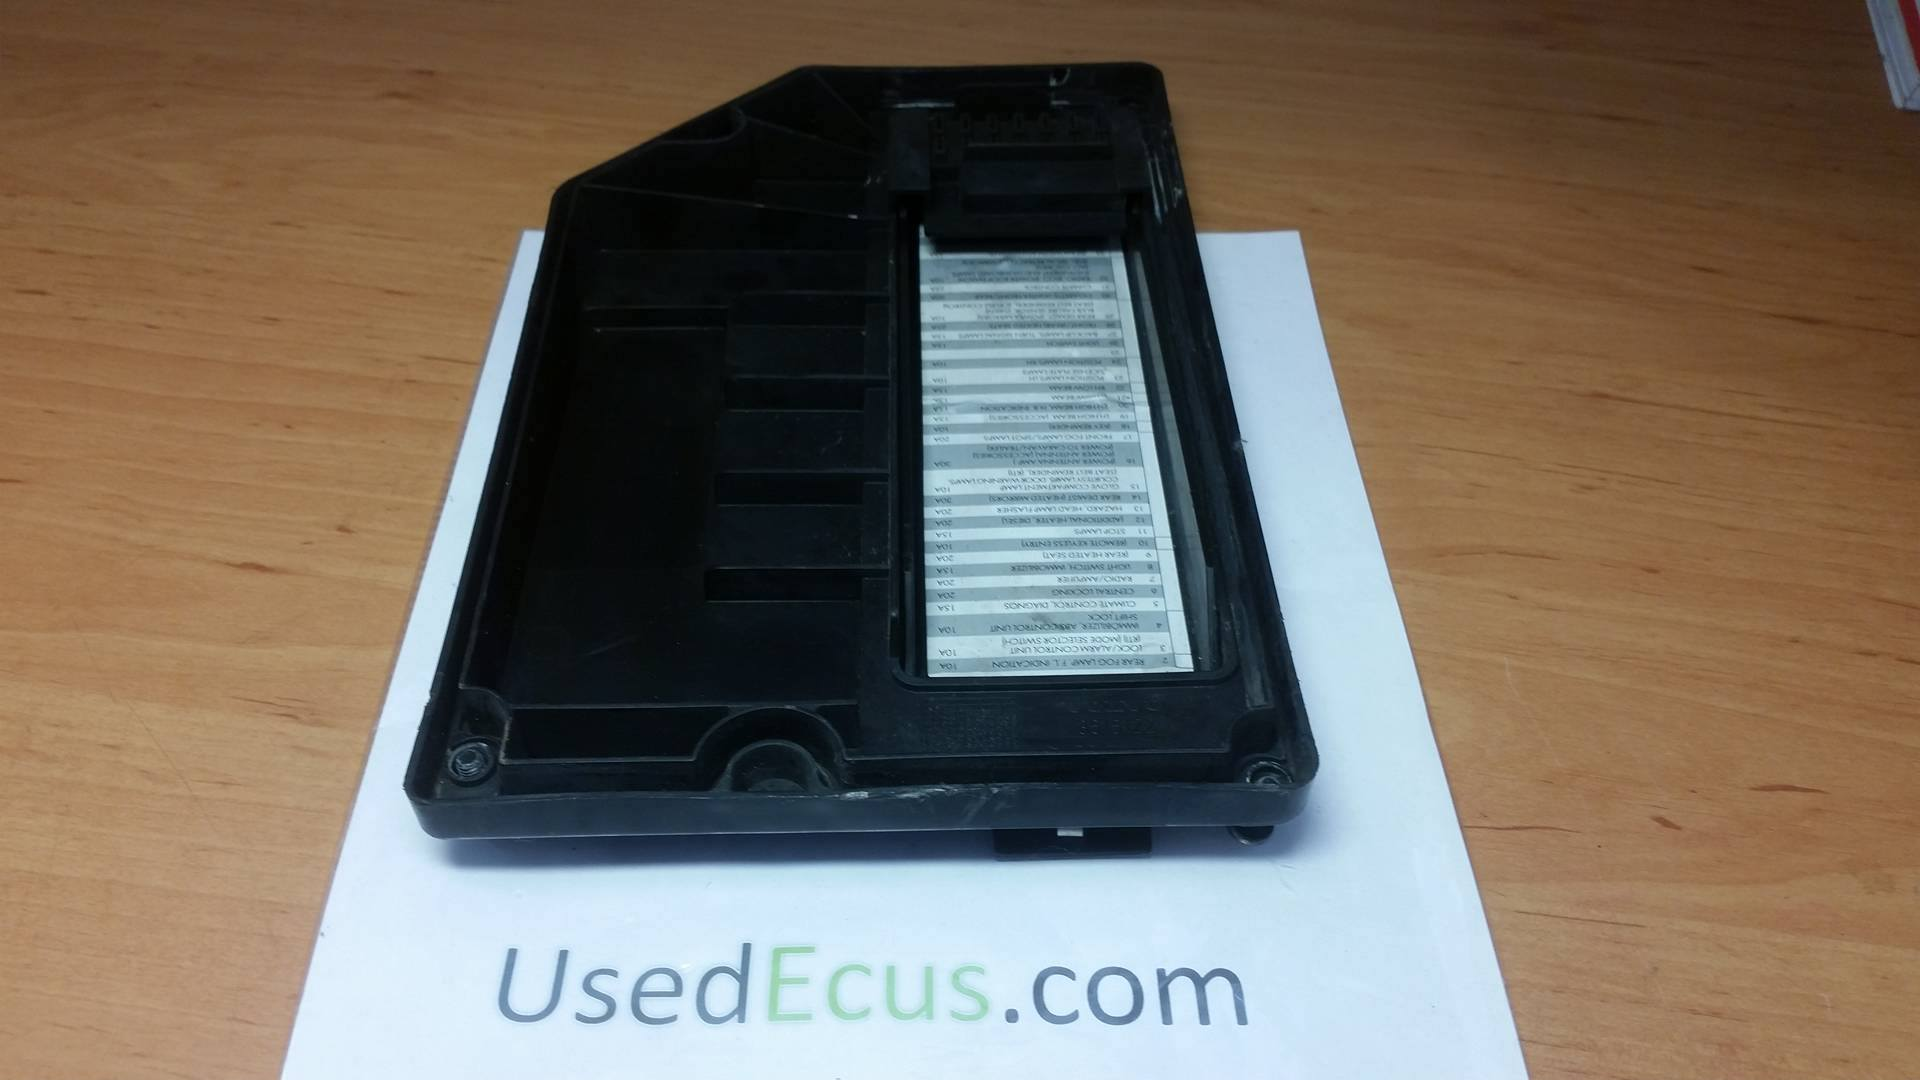 Volvo V70 C70 S70 1996 00 Engine Fuse Box Cover Panel 3515122 On Price